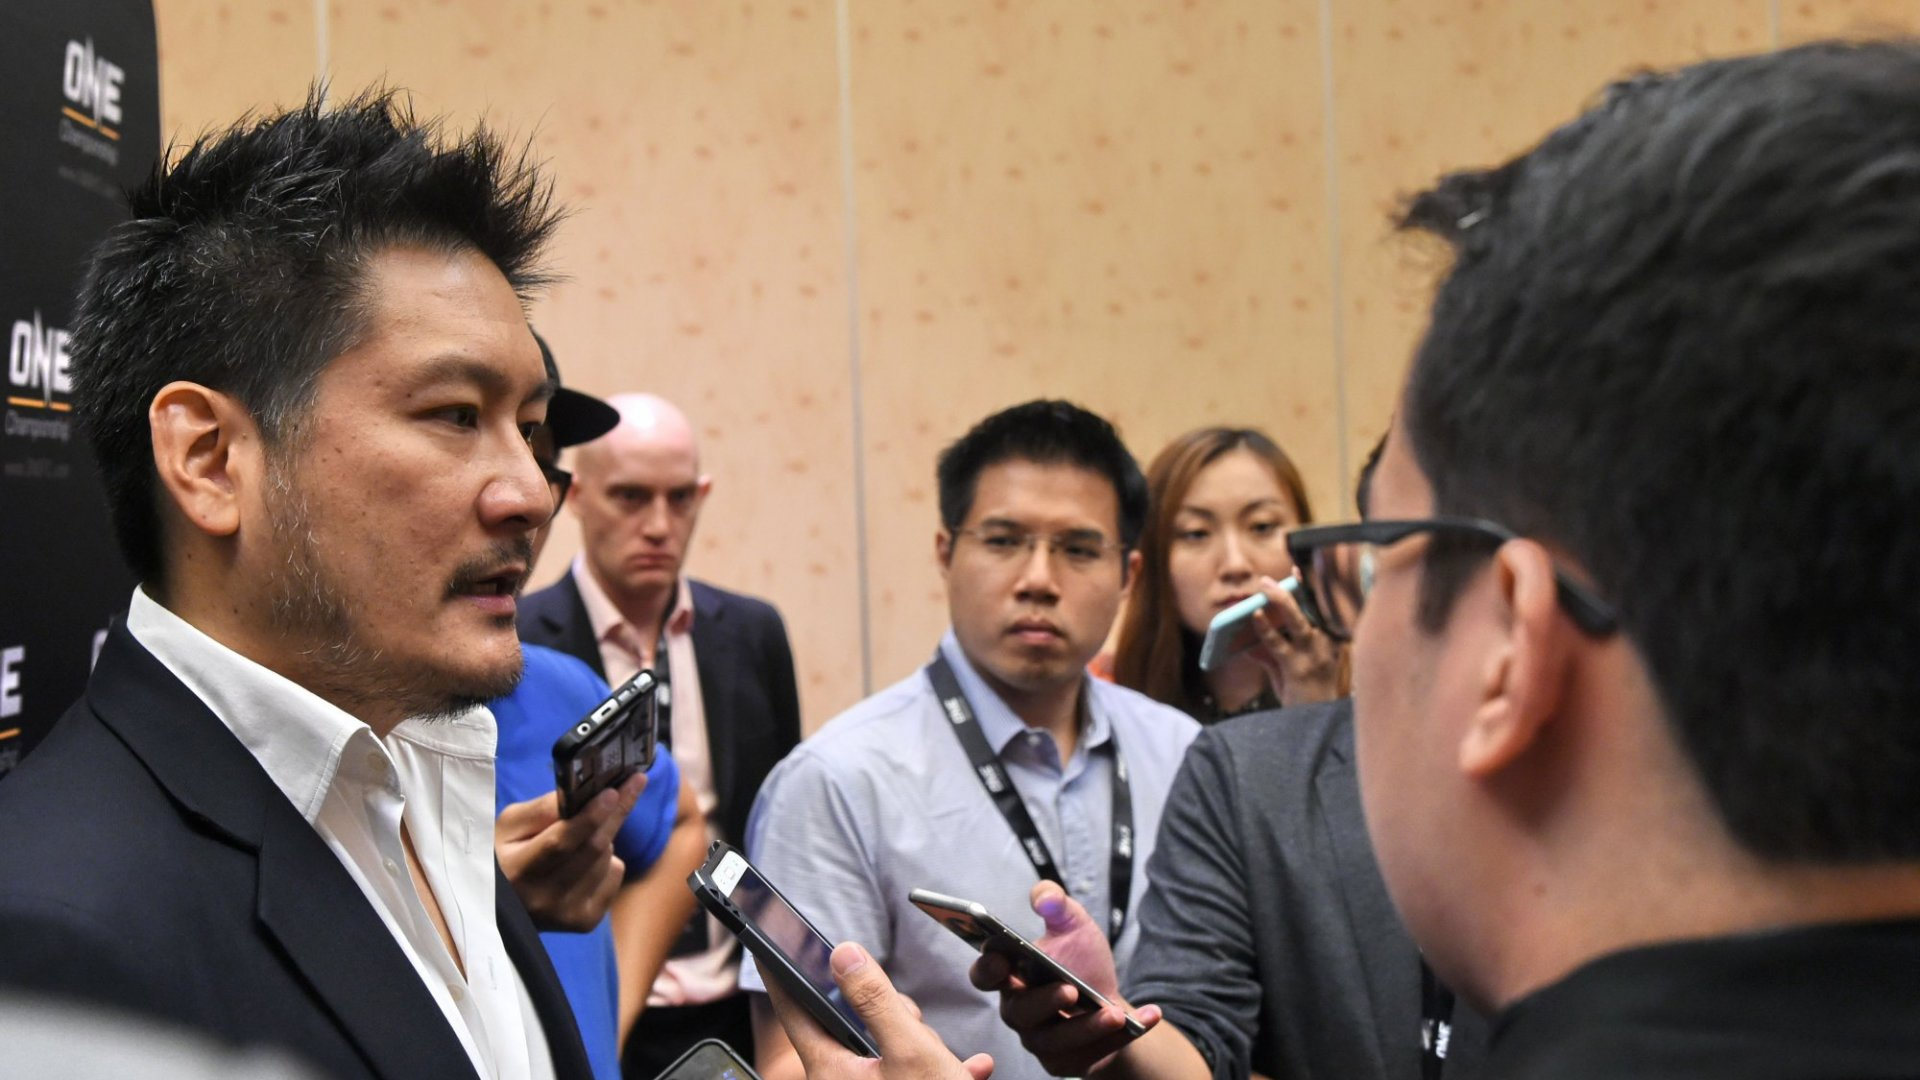 ONE Championship Founder, Chairman and CEO Chatri Sityodtong says he truly believes his company will have a larger footprint than the NFL in the near future.